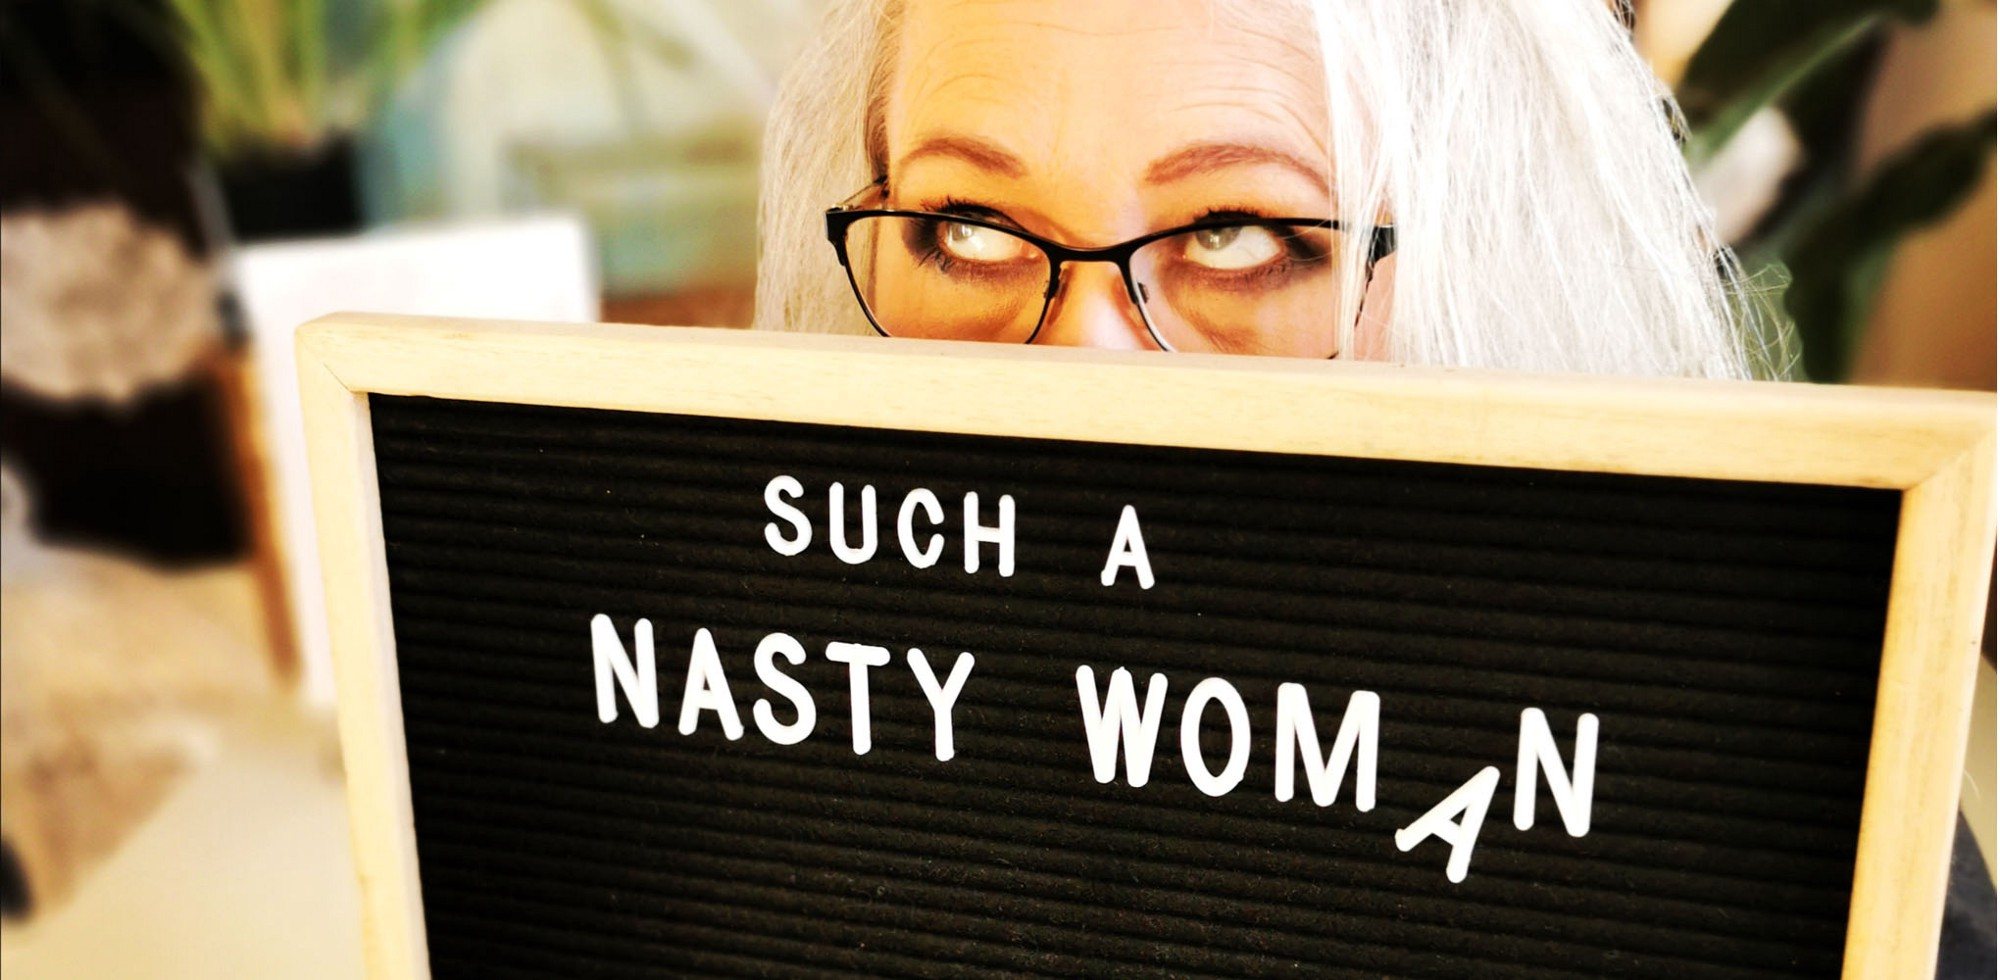 """Author holds sign board that reads """"Such a nasty woman."""" She is rolling her eyes."""